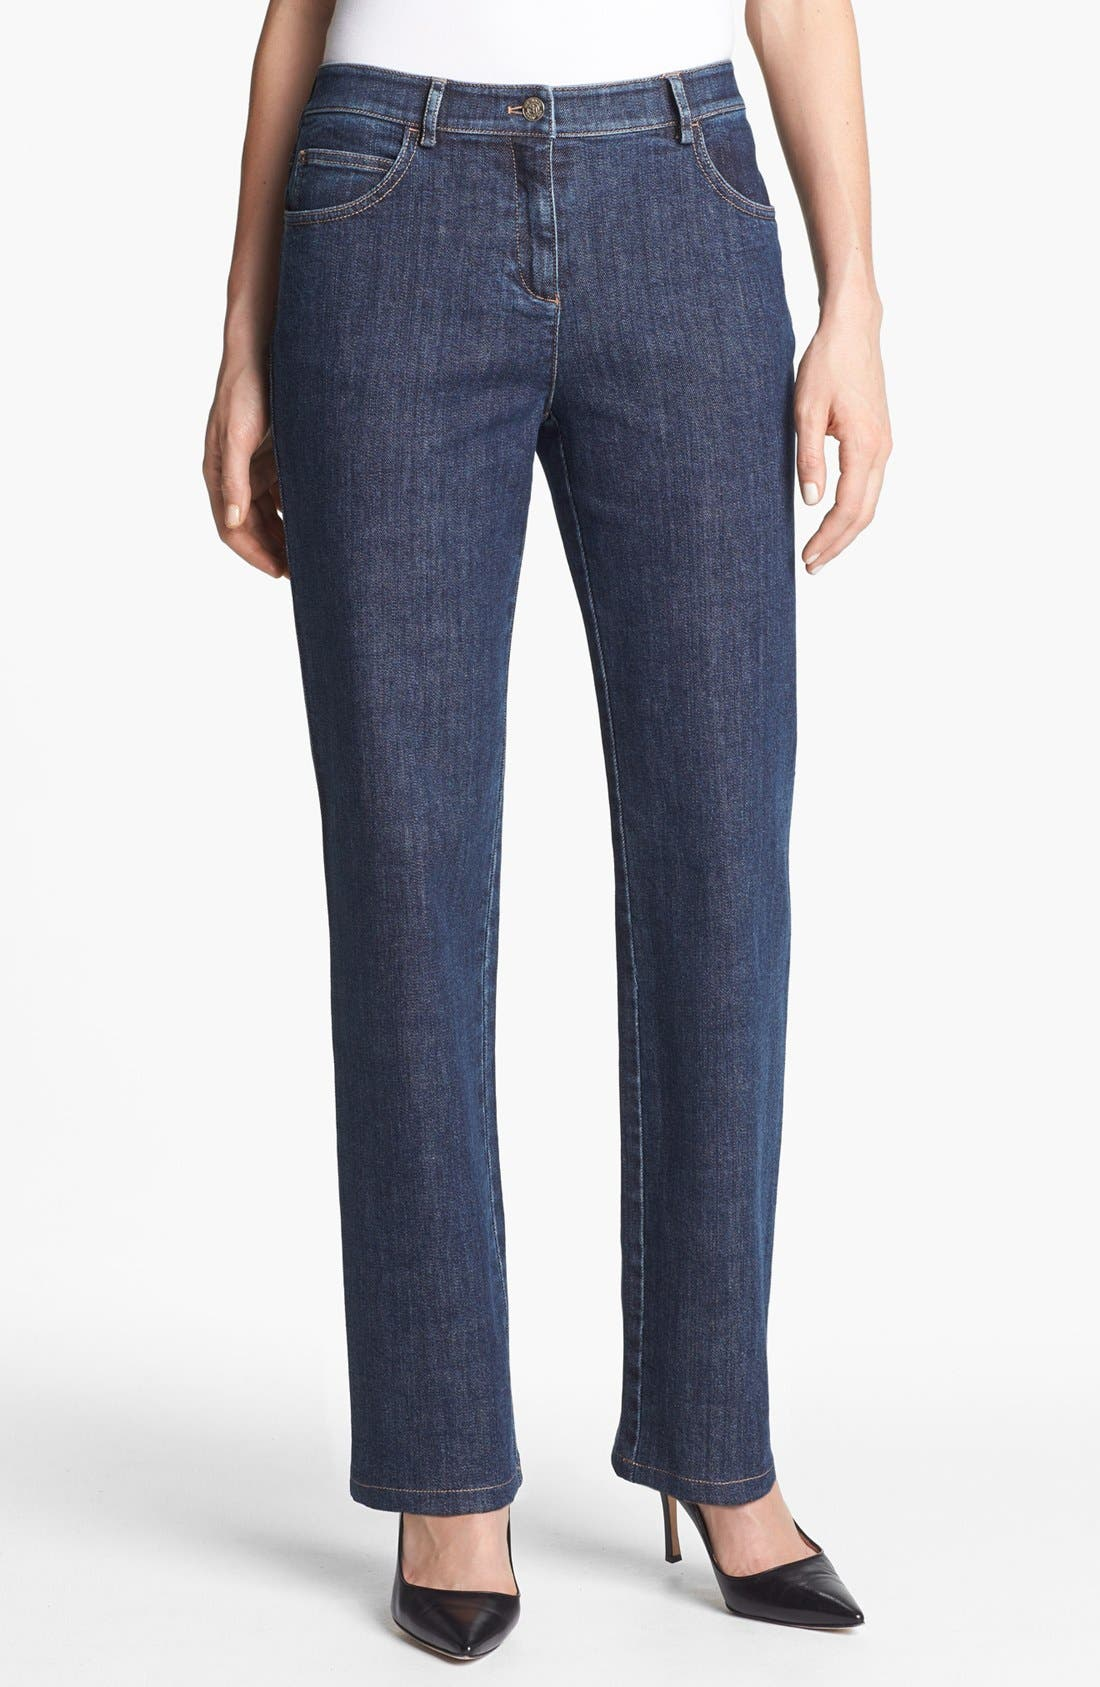 Alternate Image 1 Selected - St. John Yellow Label 'Marie' Straight Leg Stretch Jeans